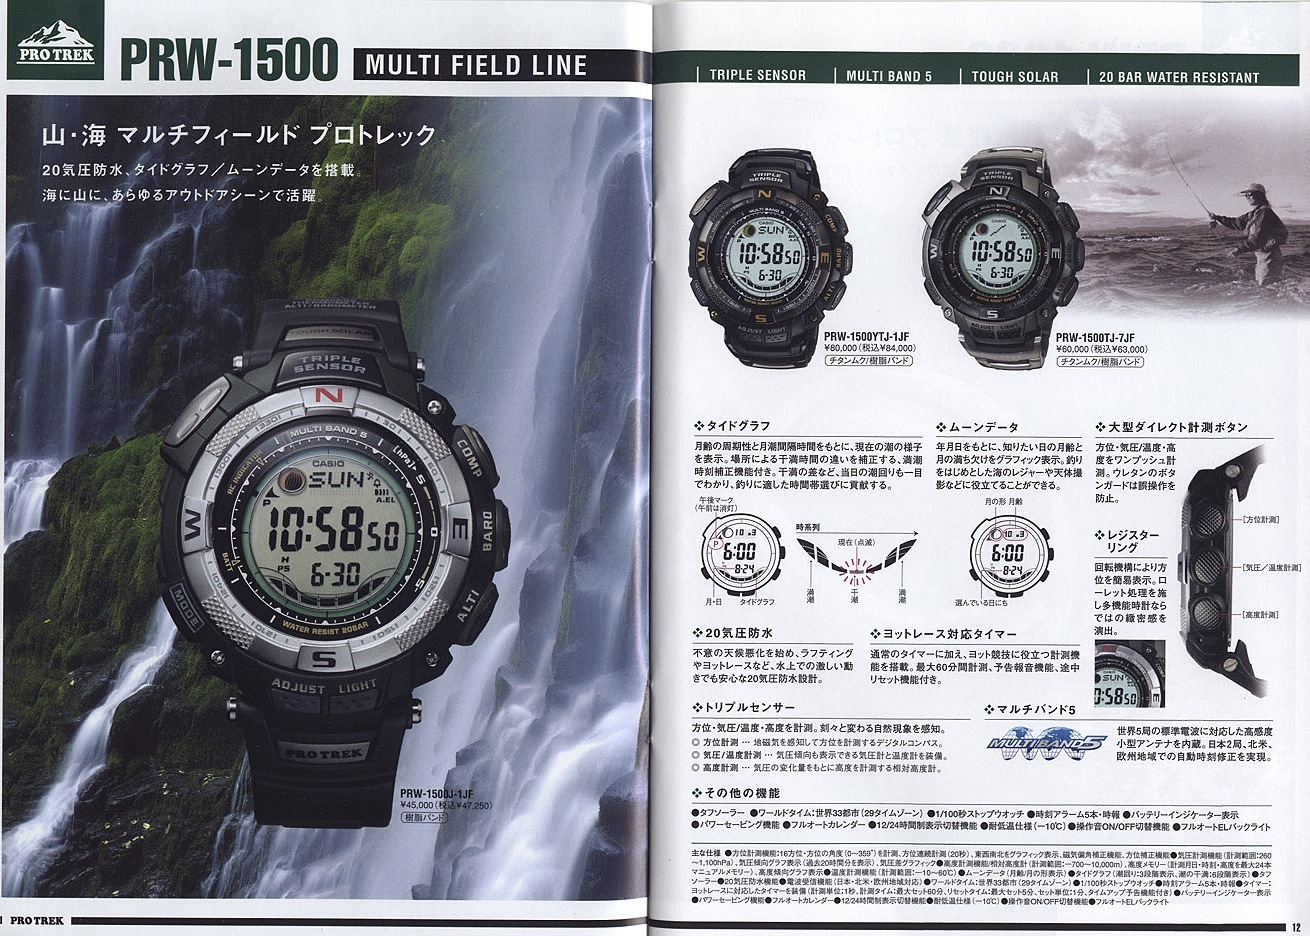 Casio-Pro-Trek-Collection-Summer-2009-Page-7.jpg